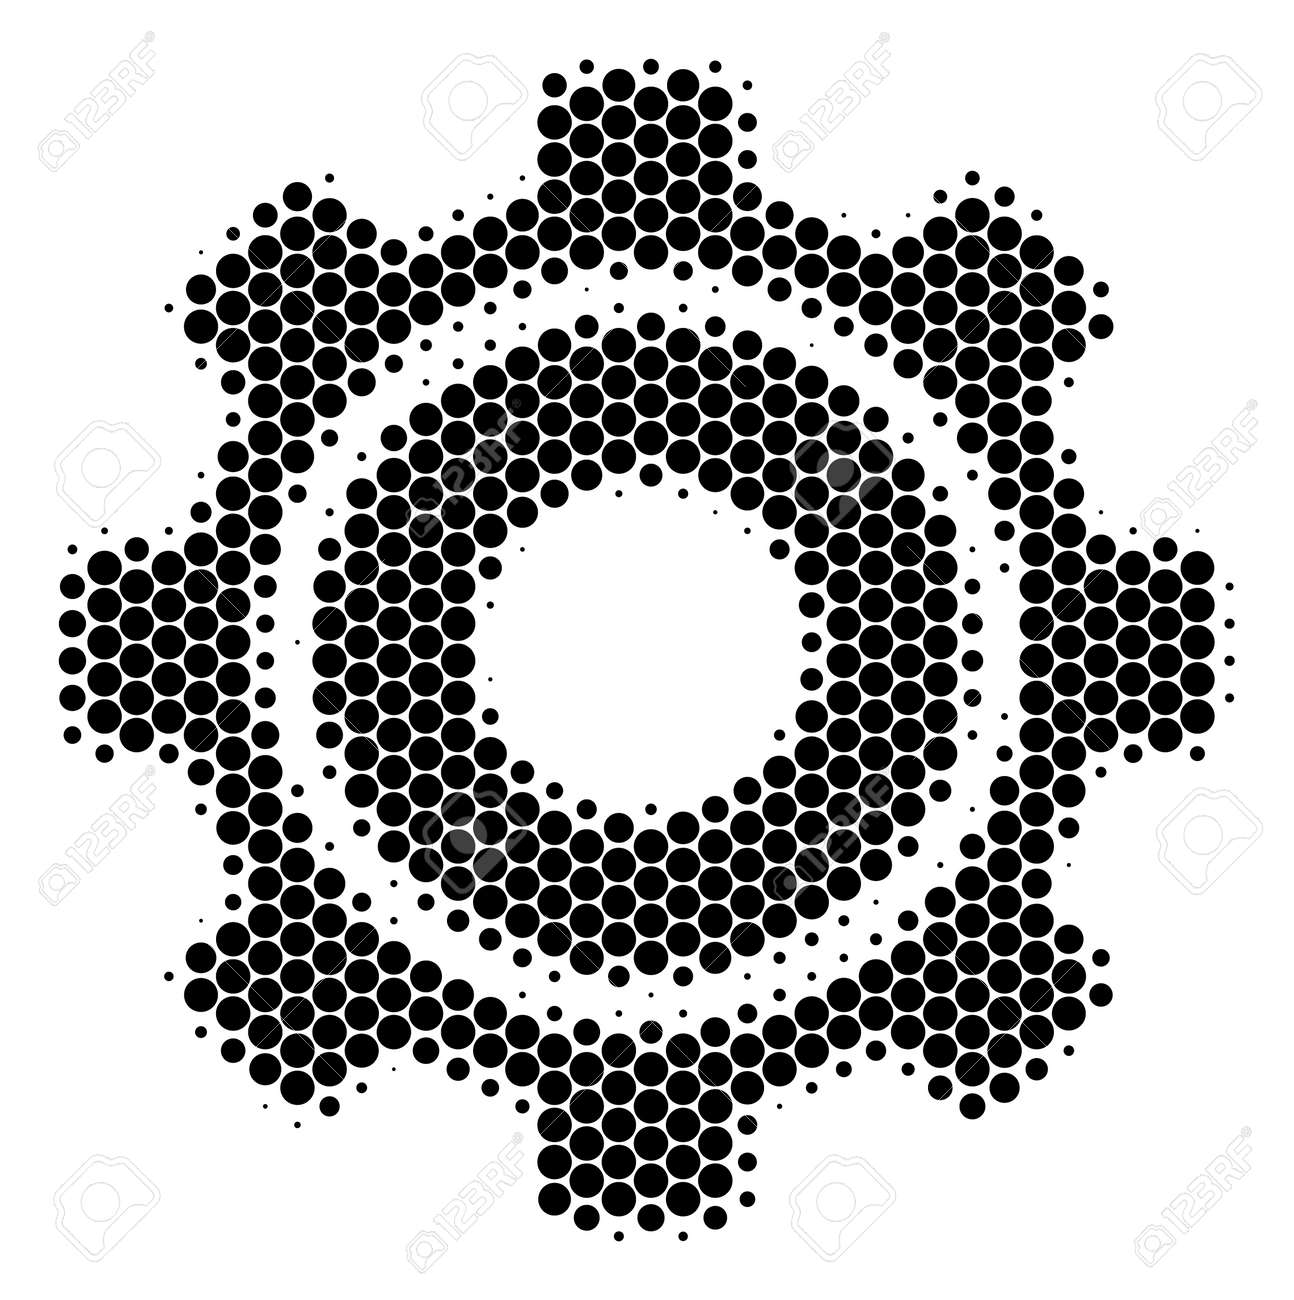 Halftone circle Cog icon  Pictogram on a white background  Vector